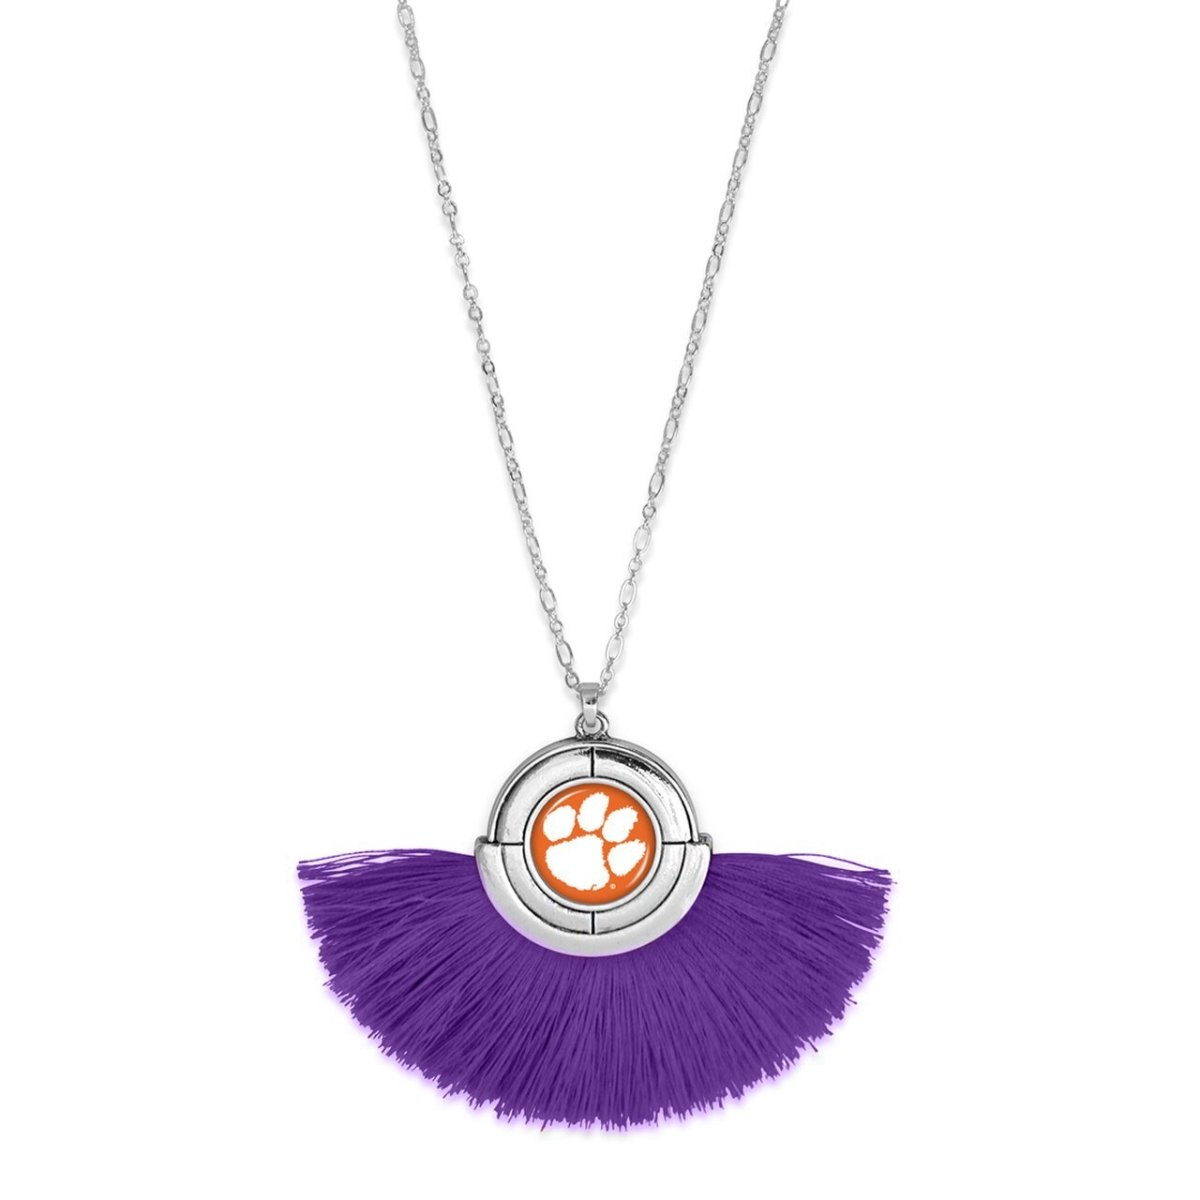 Silver Necklace Half CIrcle Tassel (no Strings Attached) - Mr. Knickerbocker